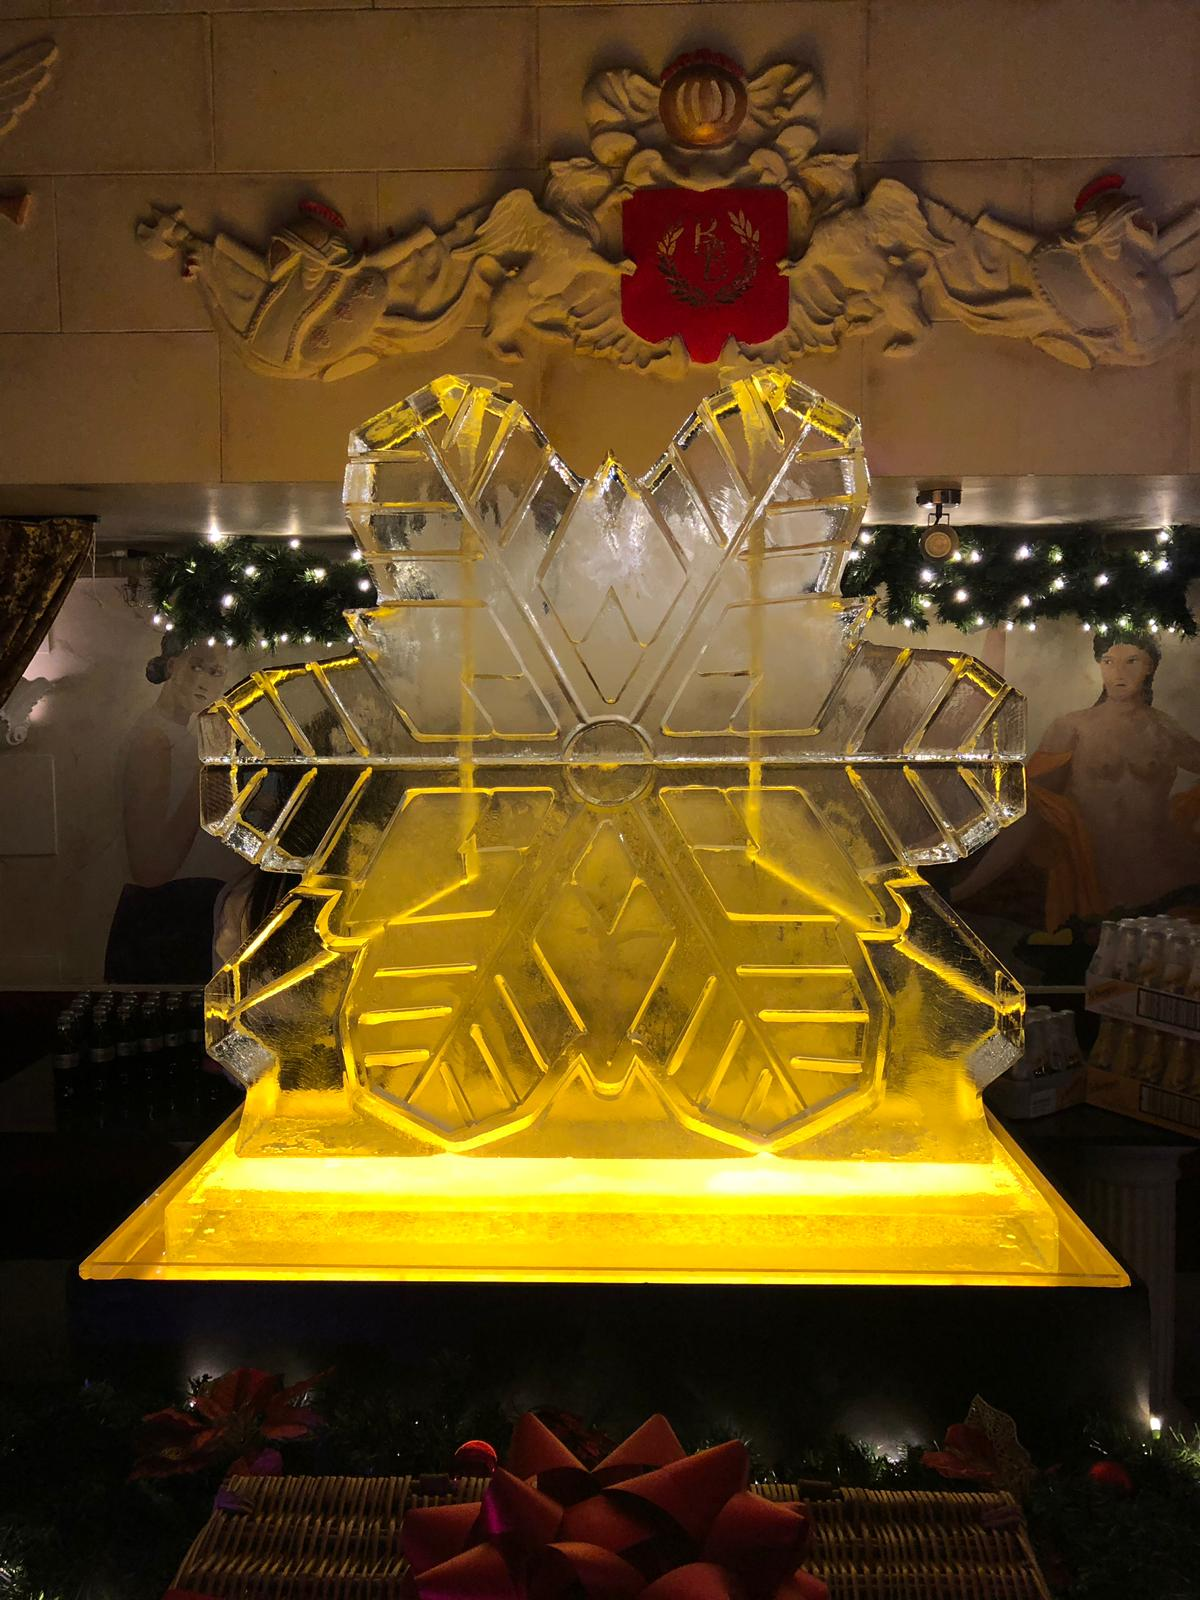 1m wide x 1m high snowflake double luge